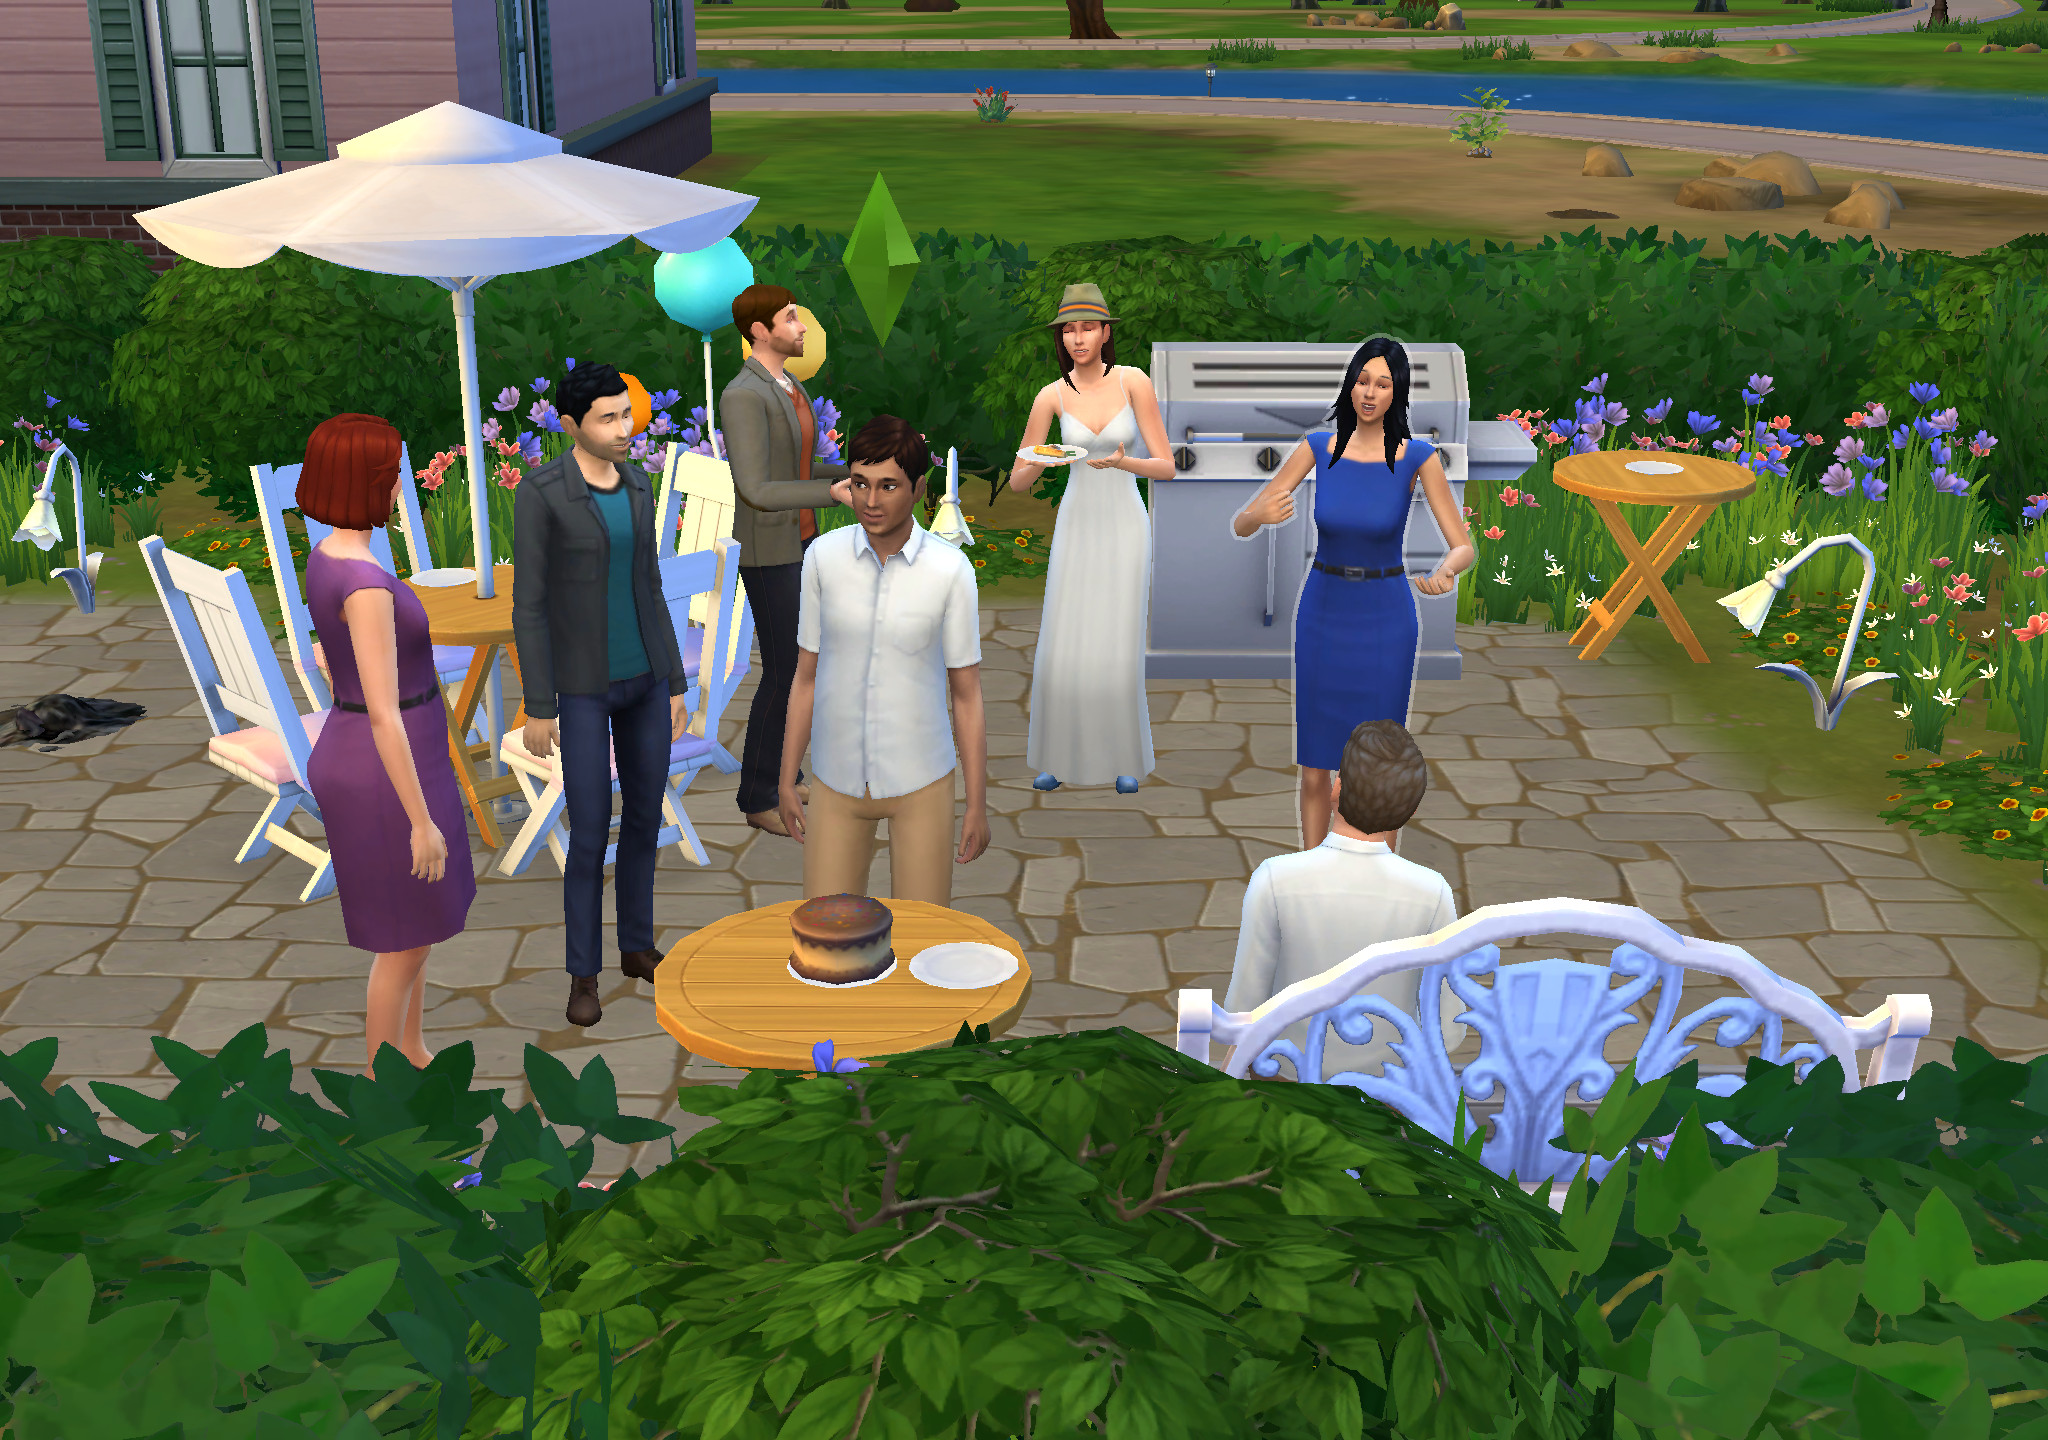 I threw my boyfriend a birthday party on The Sims because we can't have one in real life